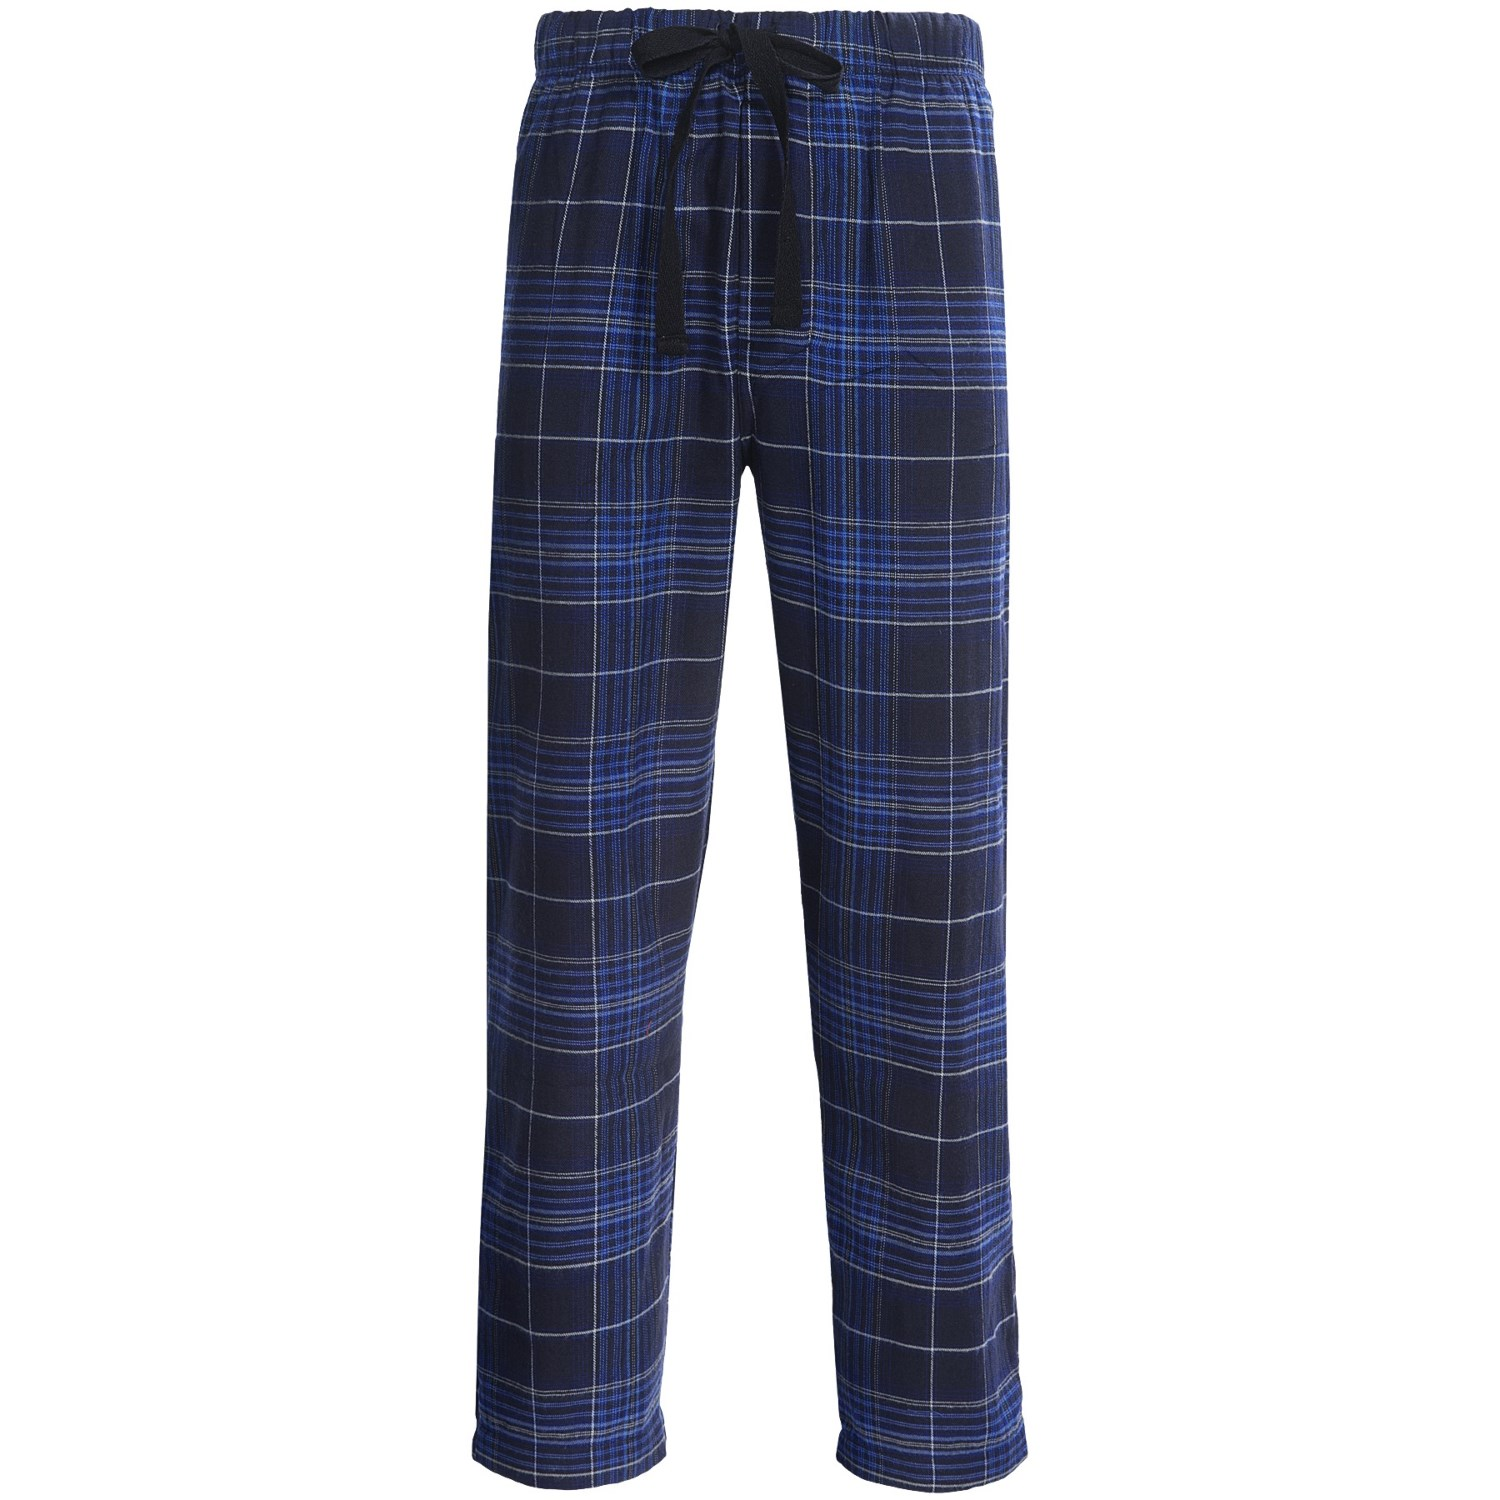 Shop Old Navy for a great selection of flannel pajamas. This flannel sleepwear is a perfect choice on chilly days. Skip to top navigation Skip to shopping bag Skip to main Round out your rotation of sleepwear options with flannel pajama pants and other essentials for around the house at Old Navy. Shipping is on us! FREE on orders of $50 or.